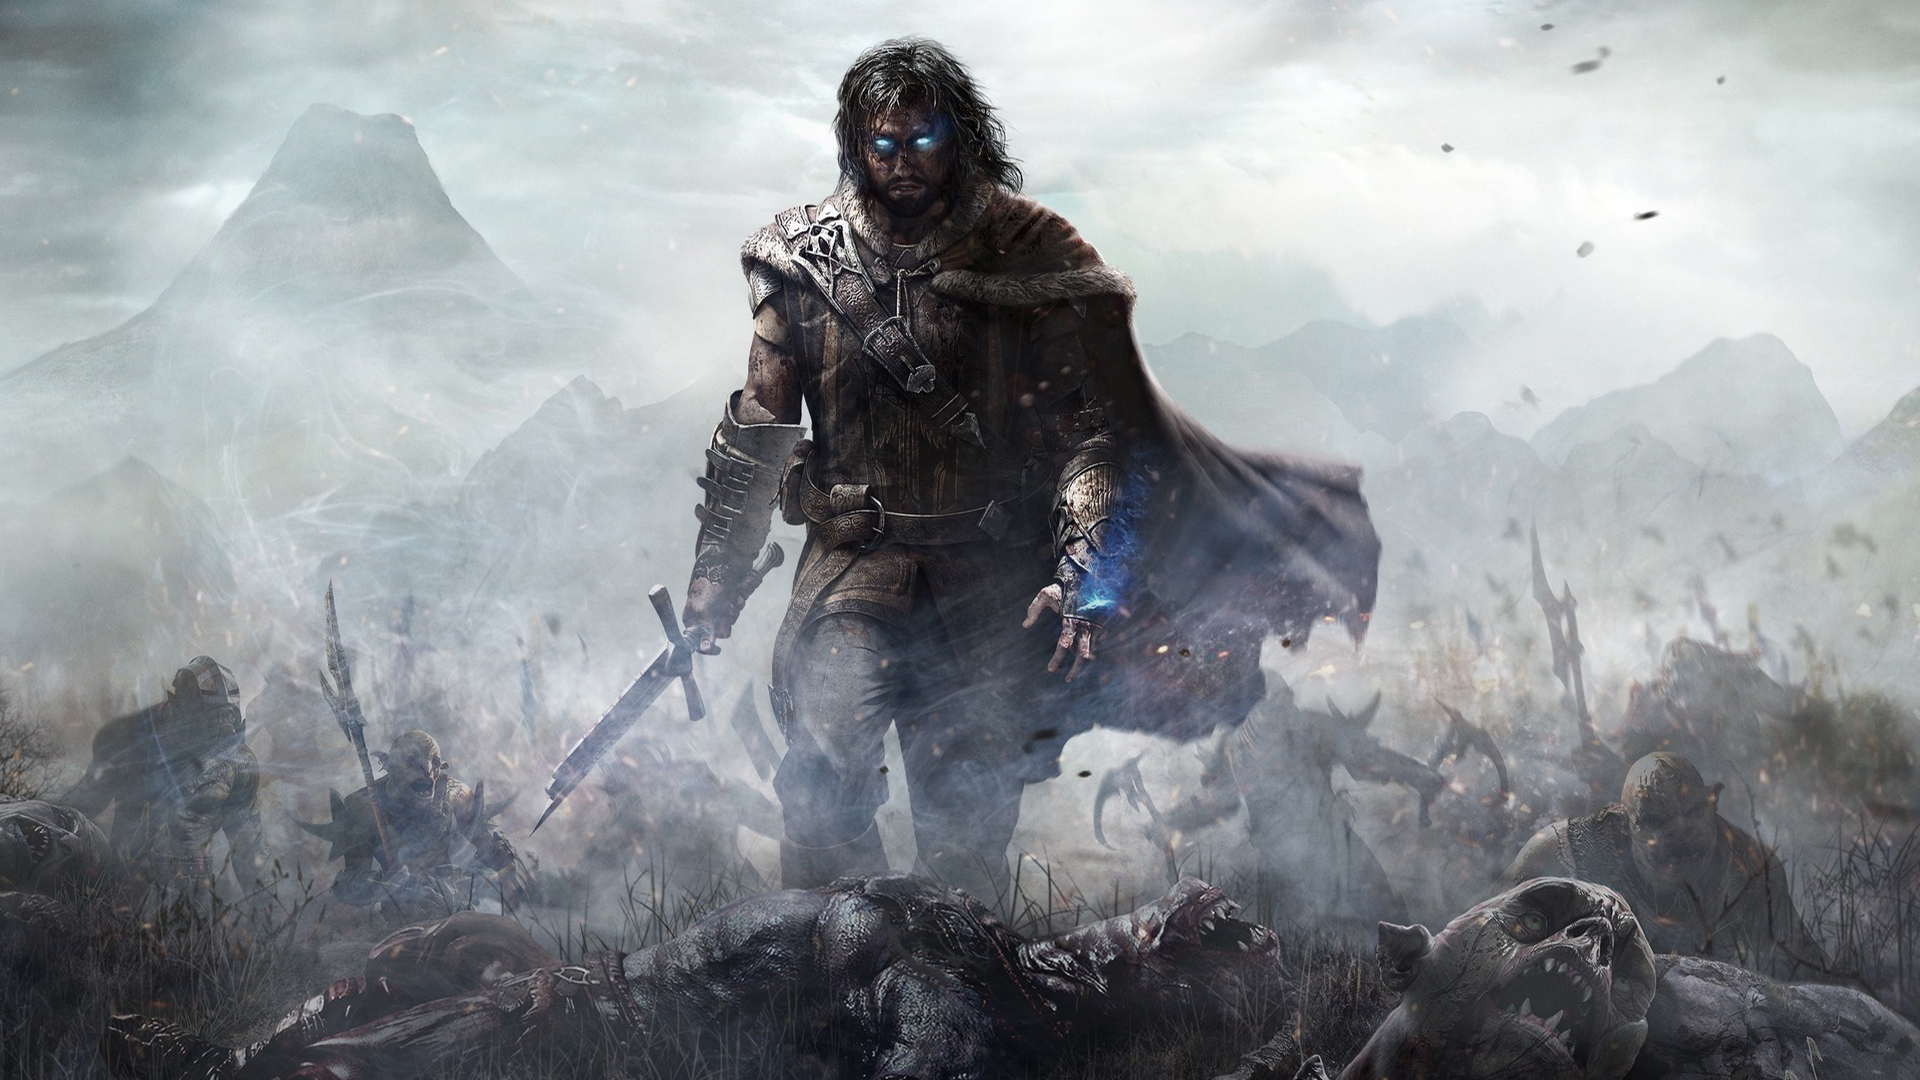 1920x1080 Video Game Middle-earth: Shadow Of Mordor